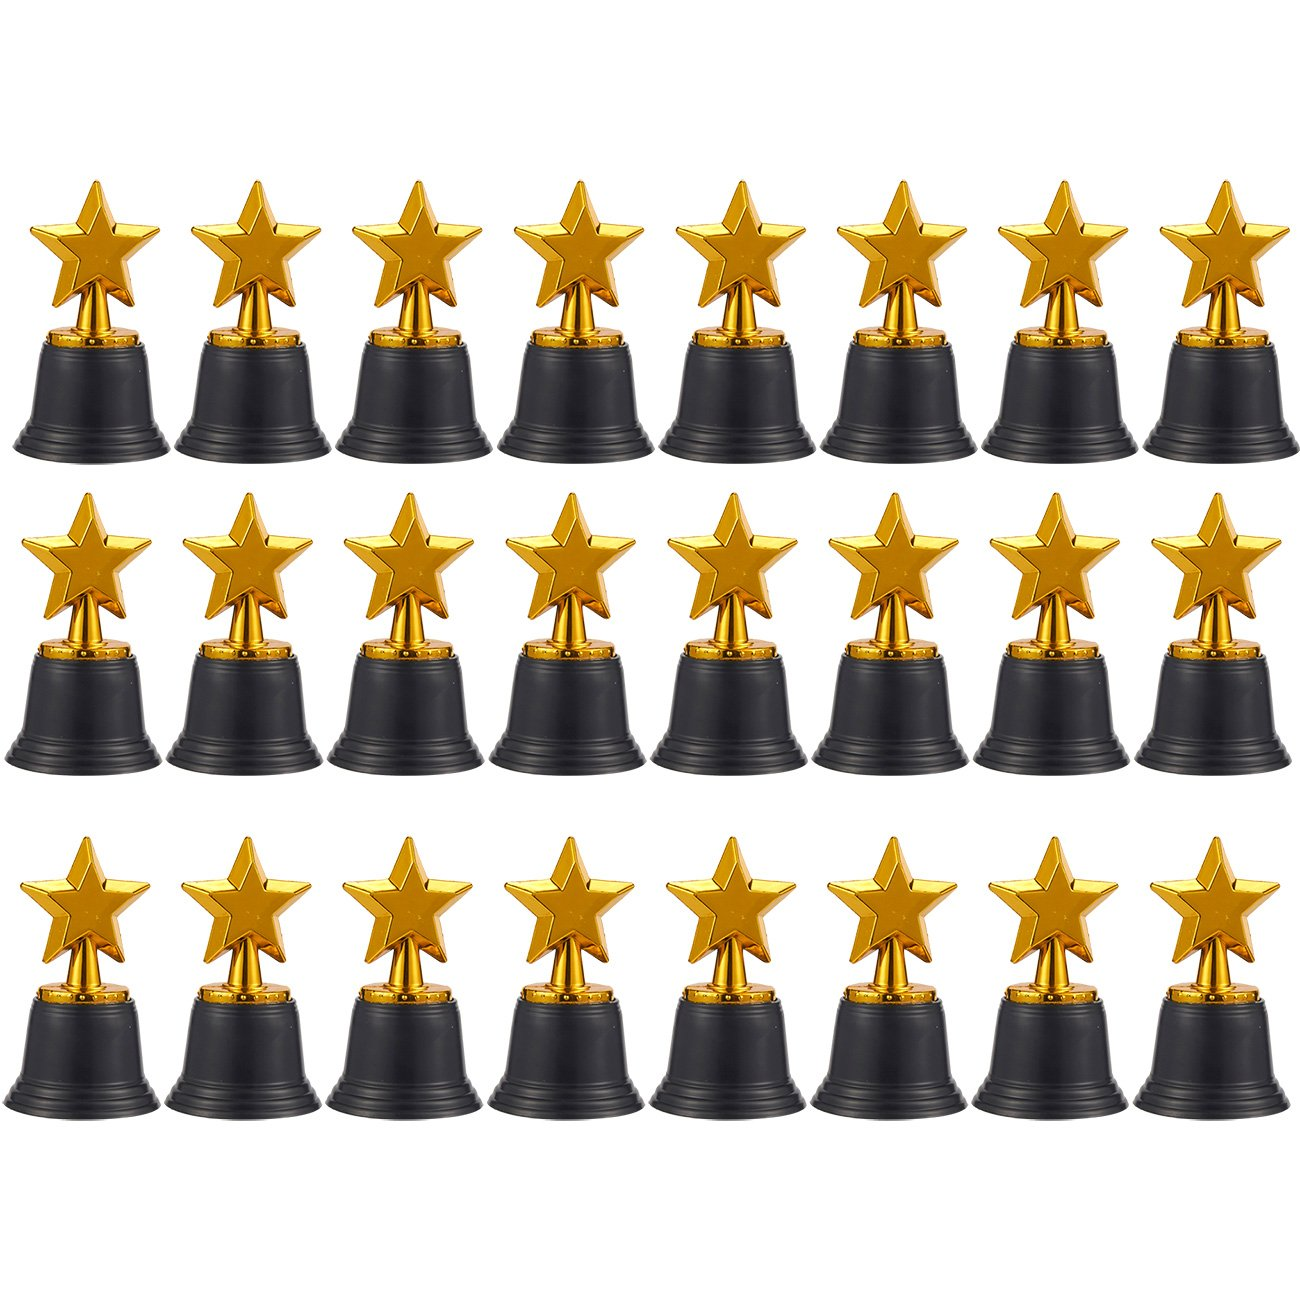 Juvale Star Trophies - Pack of 12 Mini Star Awards, Plastic Trophies for Kids, Gold, 2.6 x 4.7 x 2.6 Inches